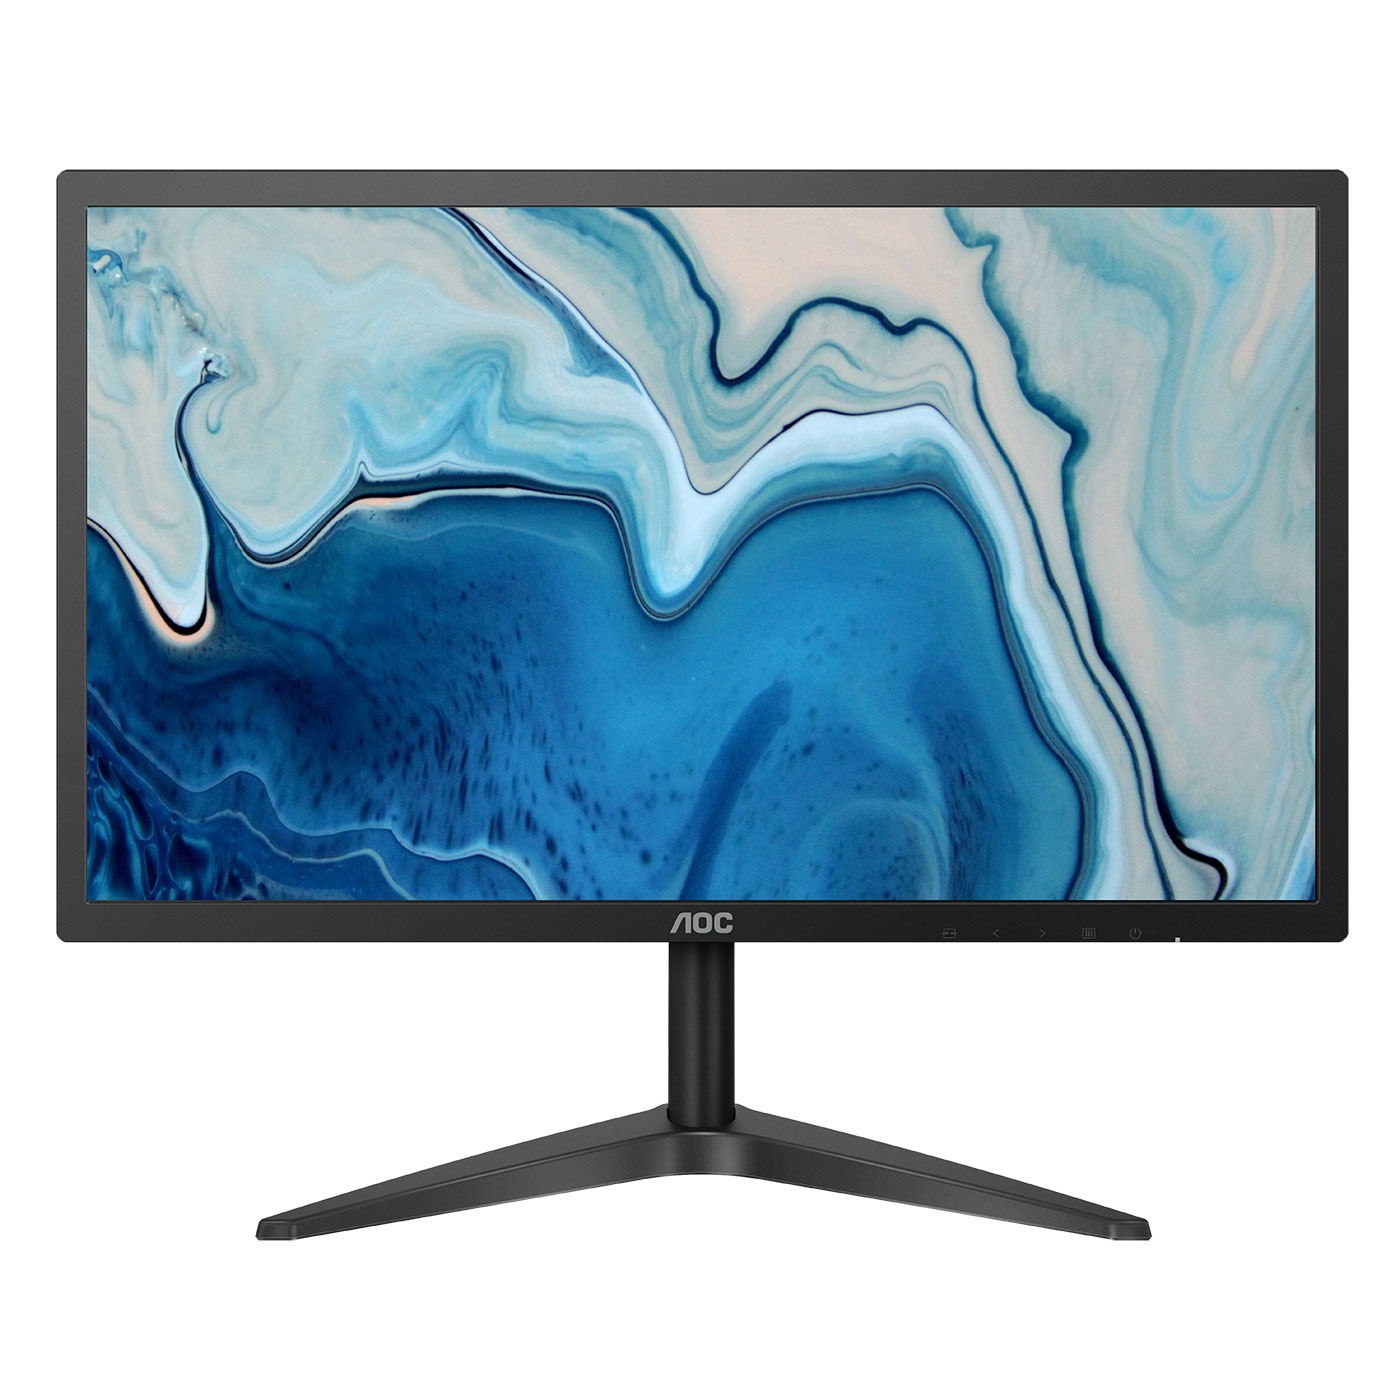 "Ecran PC AOC 21.5"" LED - 22B1H 1920 x 1080 pixels  - 5 ms - Format large 16/9 - HDMI - VGA - Noir"